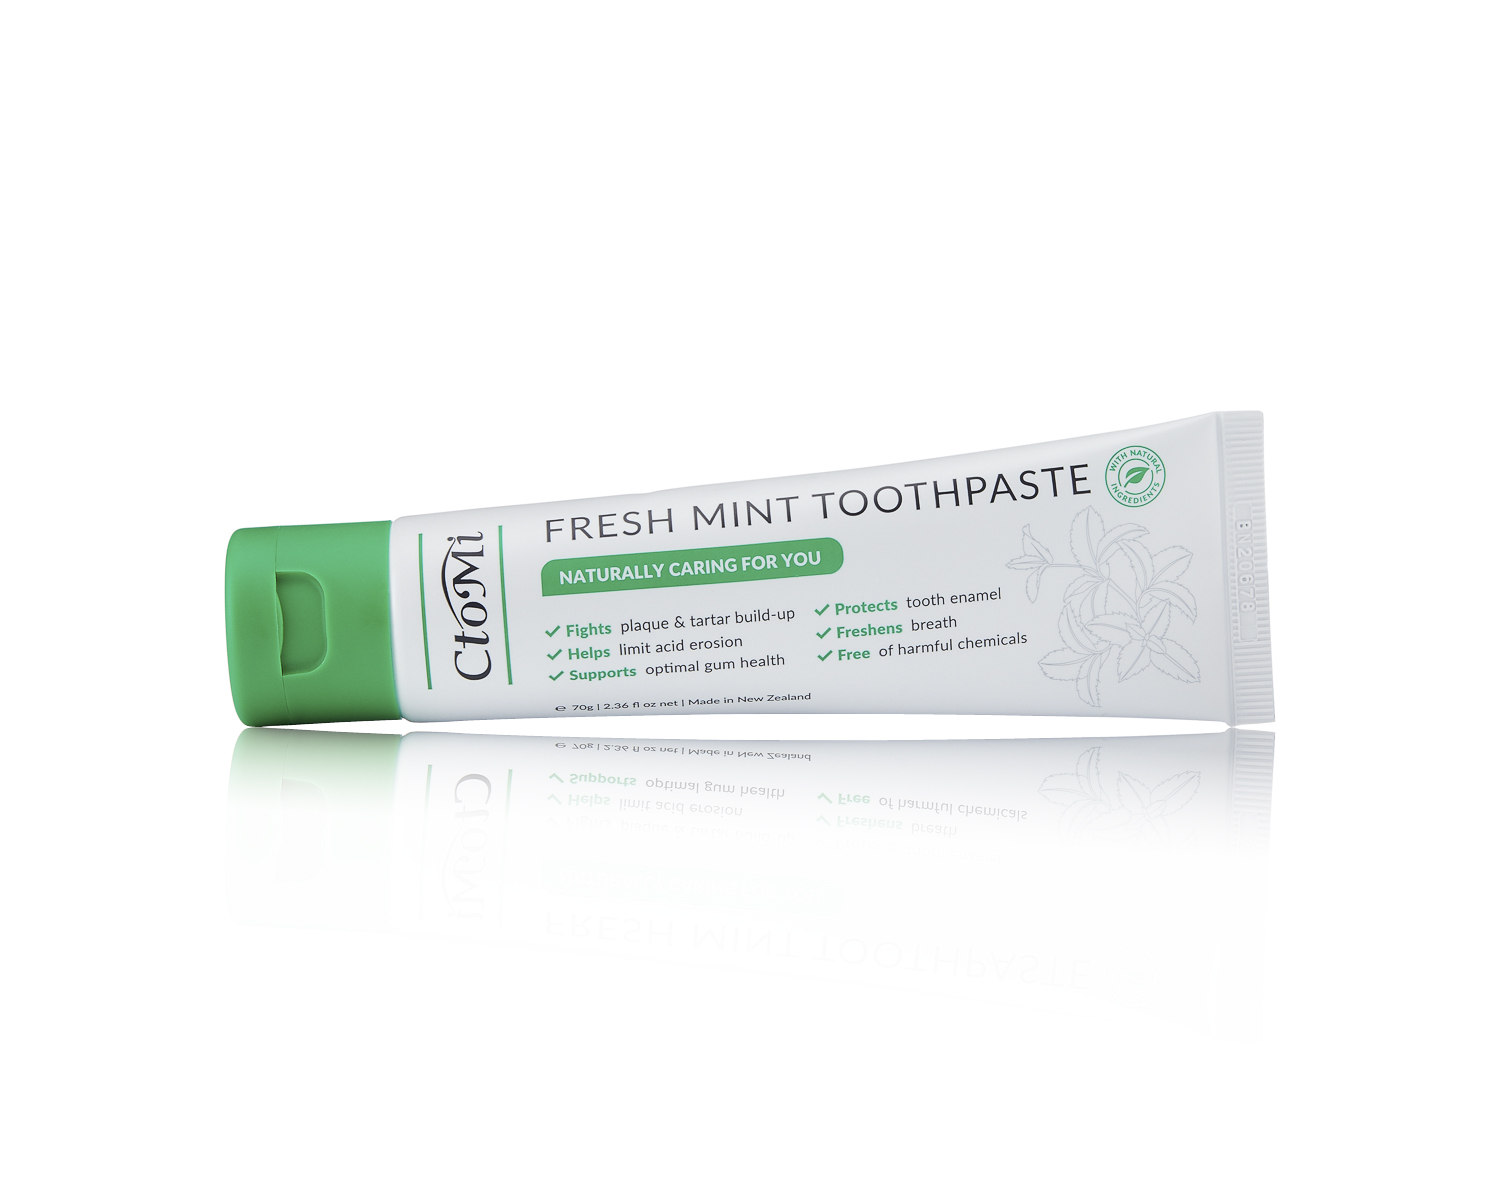 FRESH MINT TOOTHPASTE